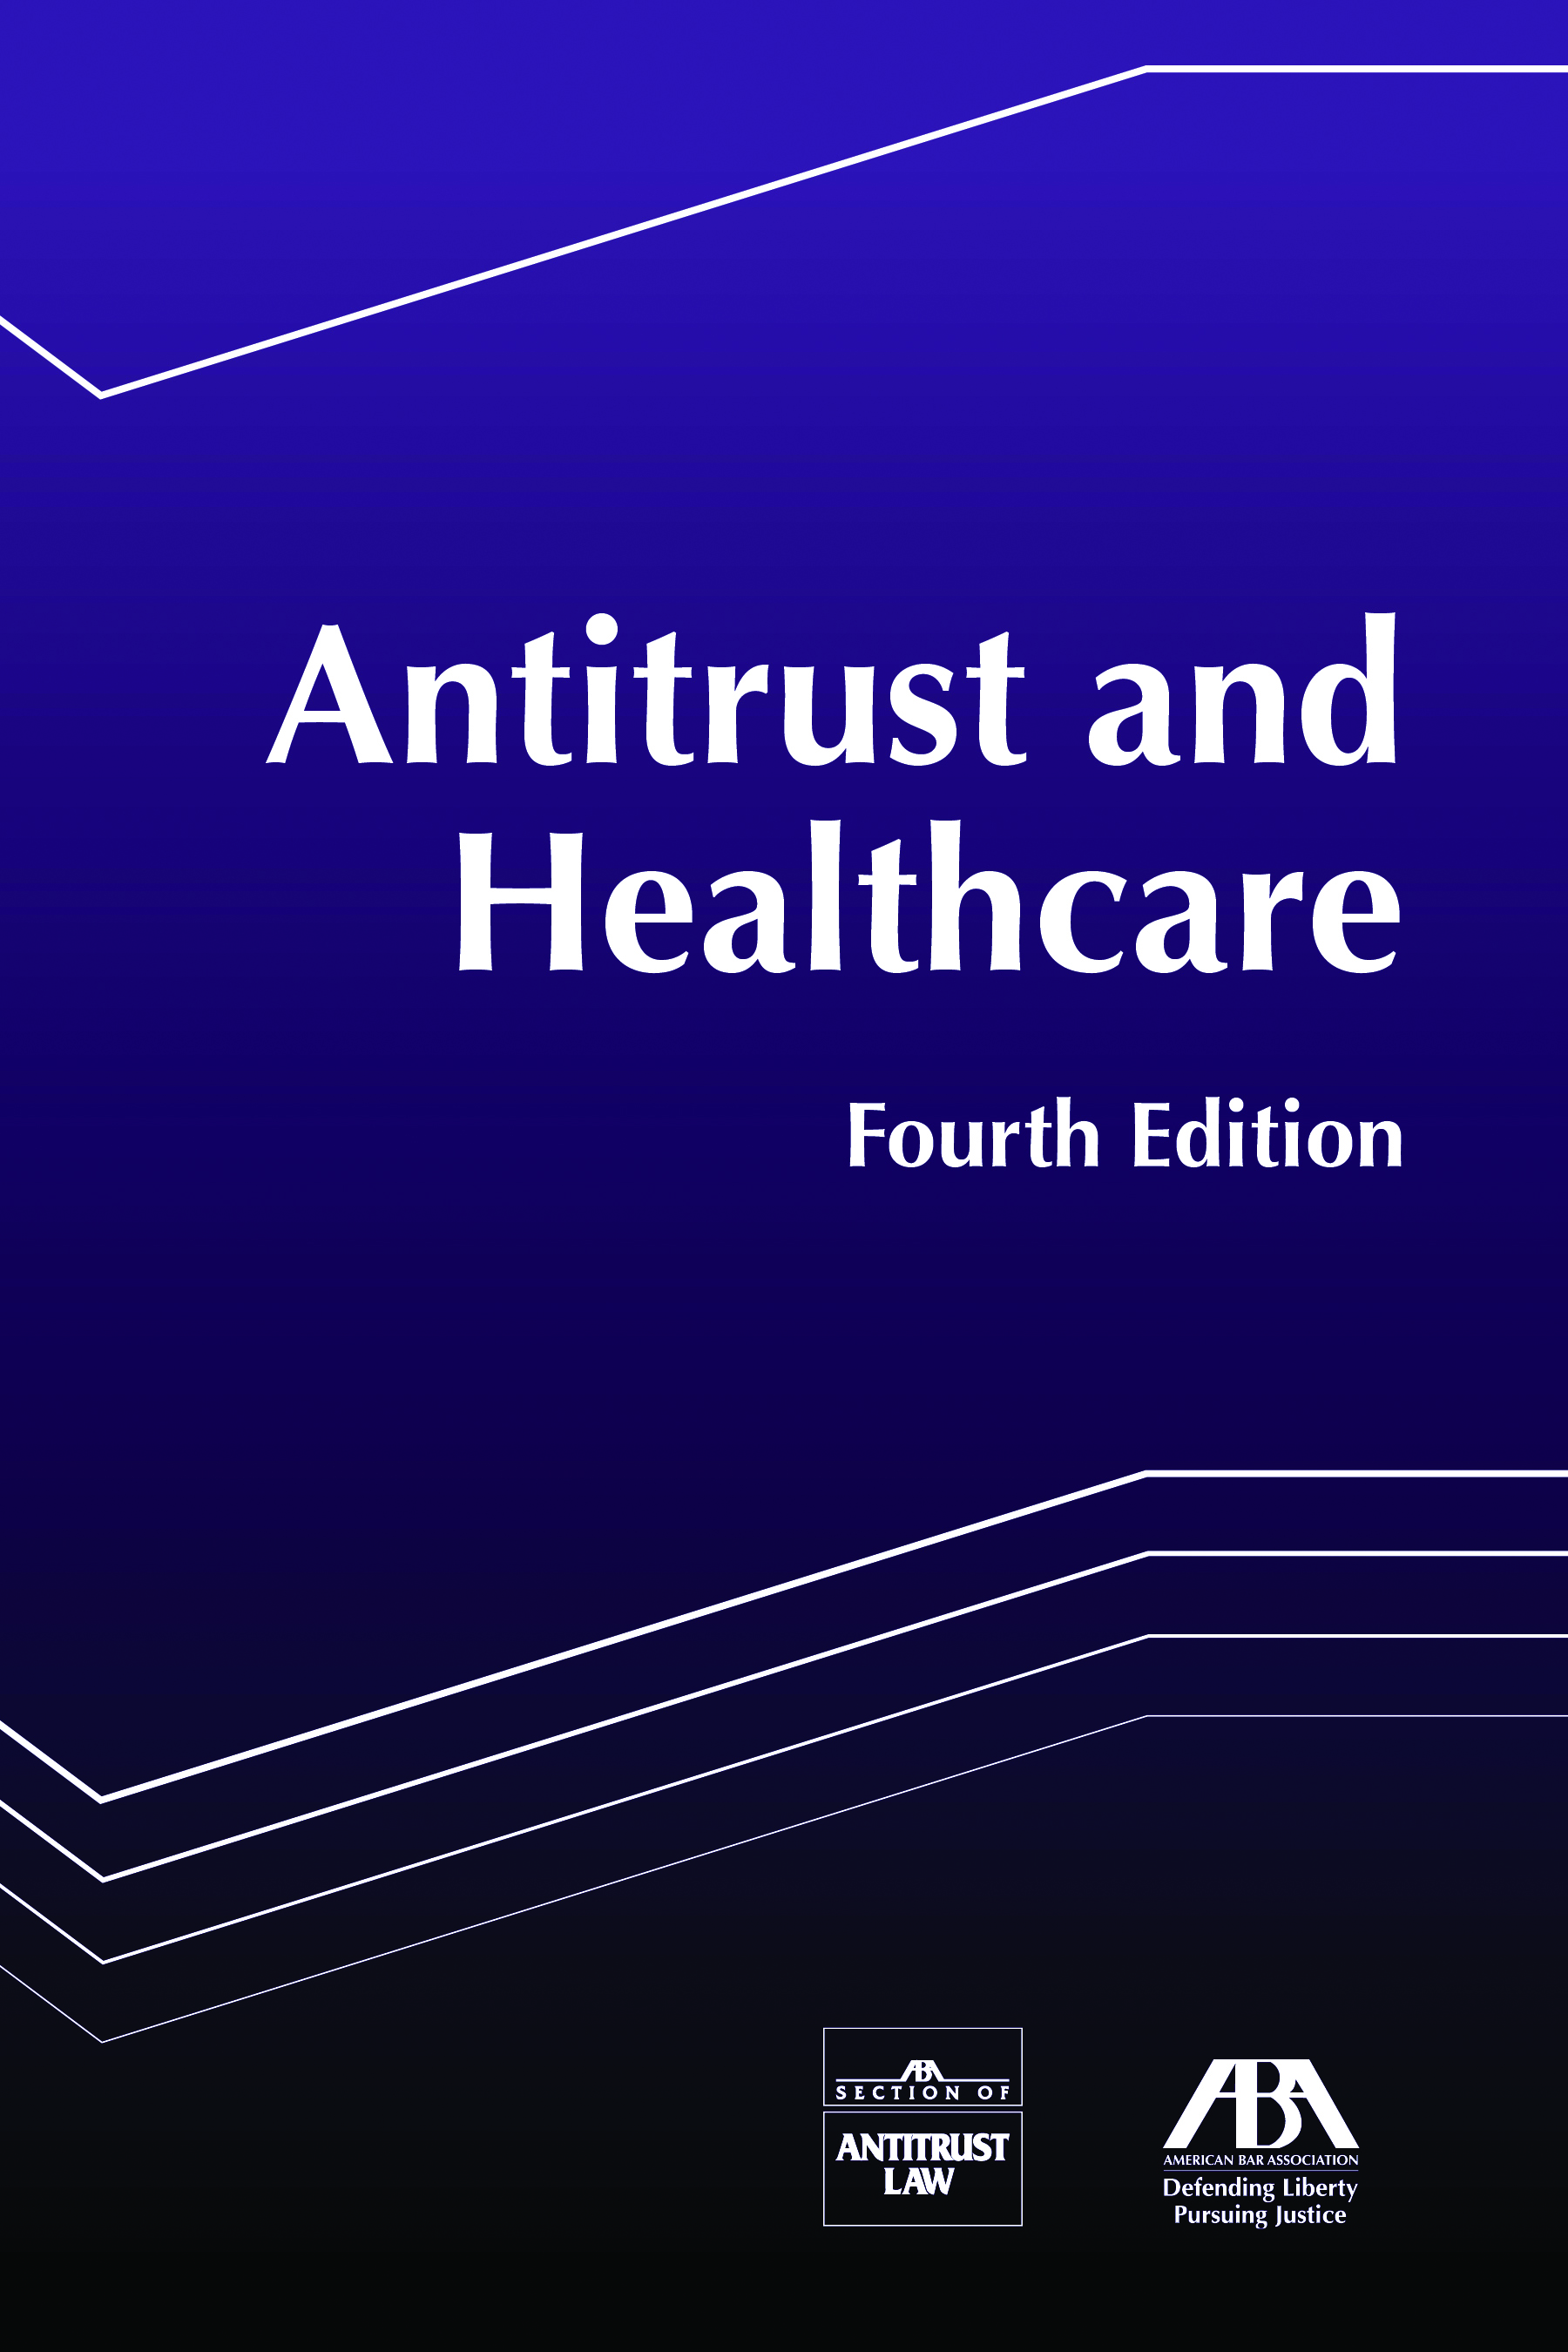 Antitrust and Healthcare, 4th Edition